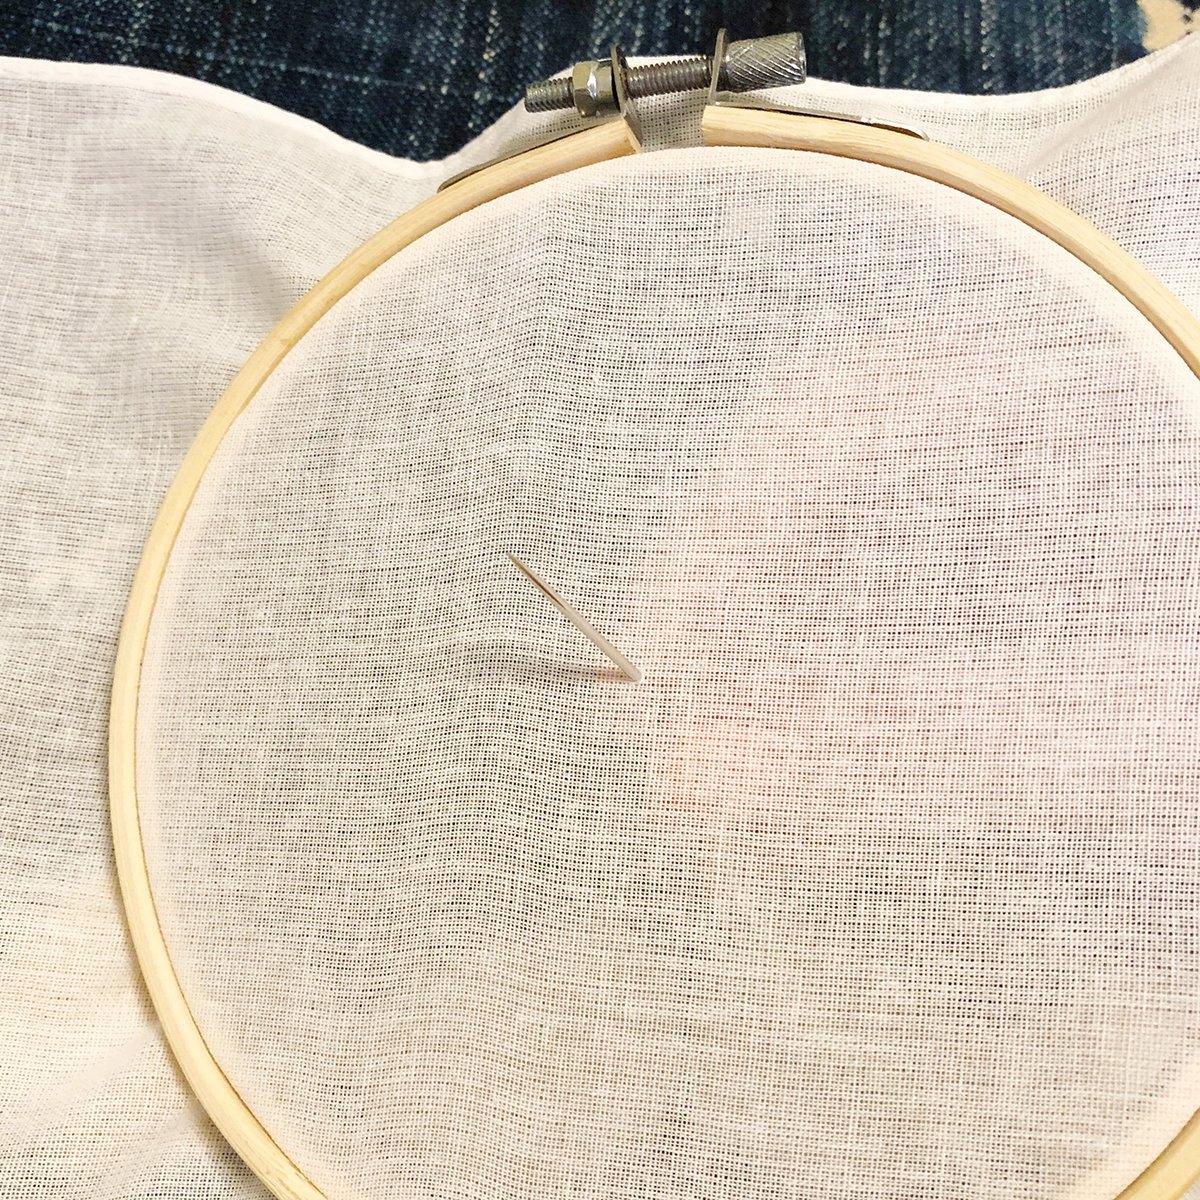 Embroidery - French Knot - 01